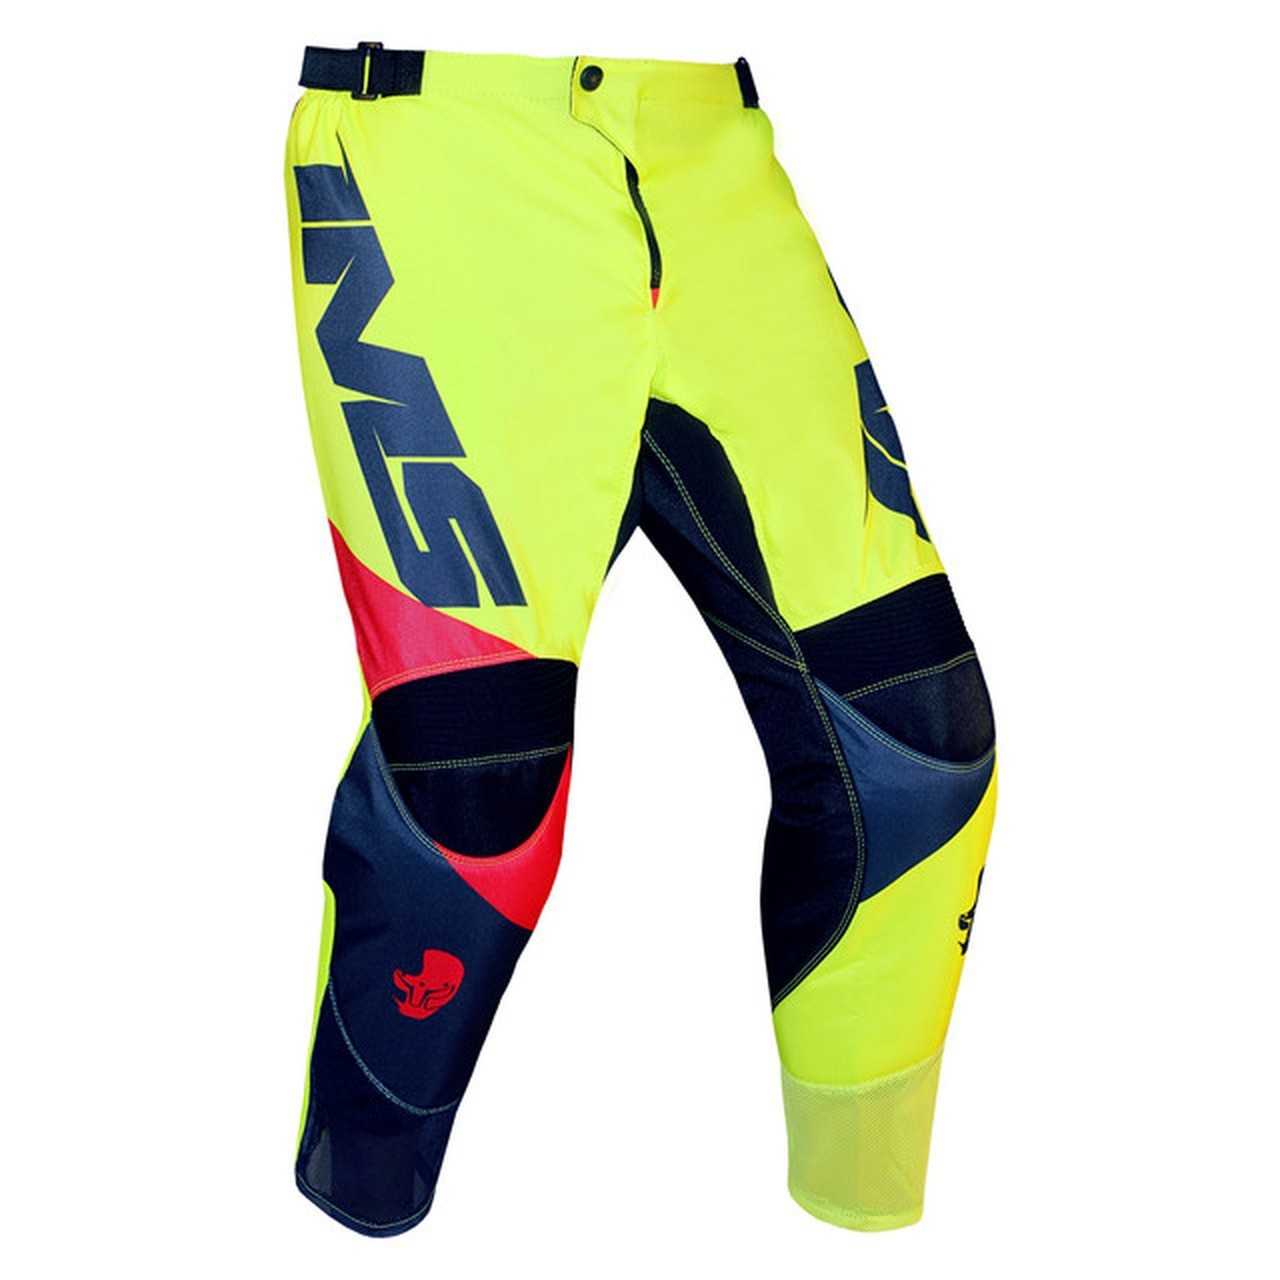 Kit Calça + Camisa IMS Army - Fluor